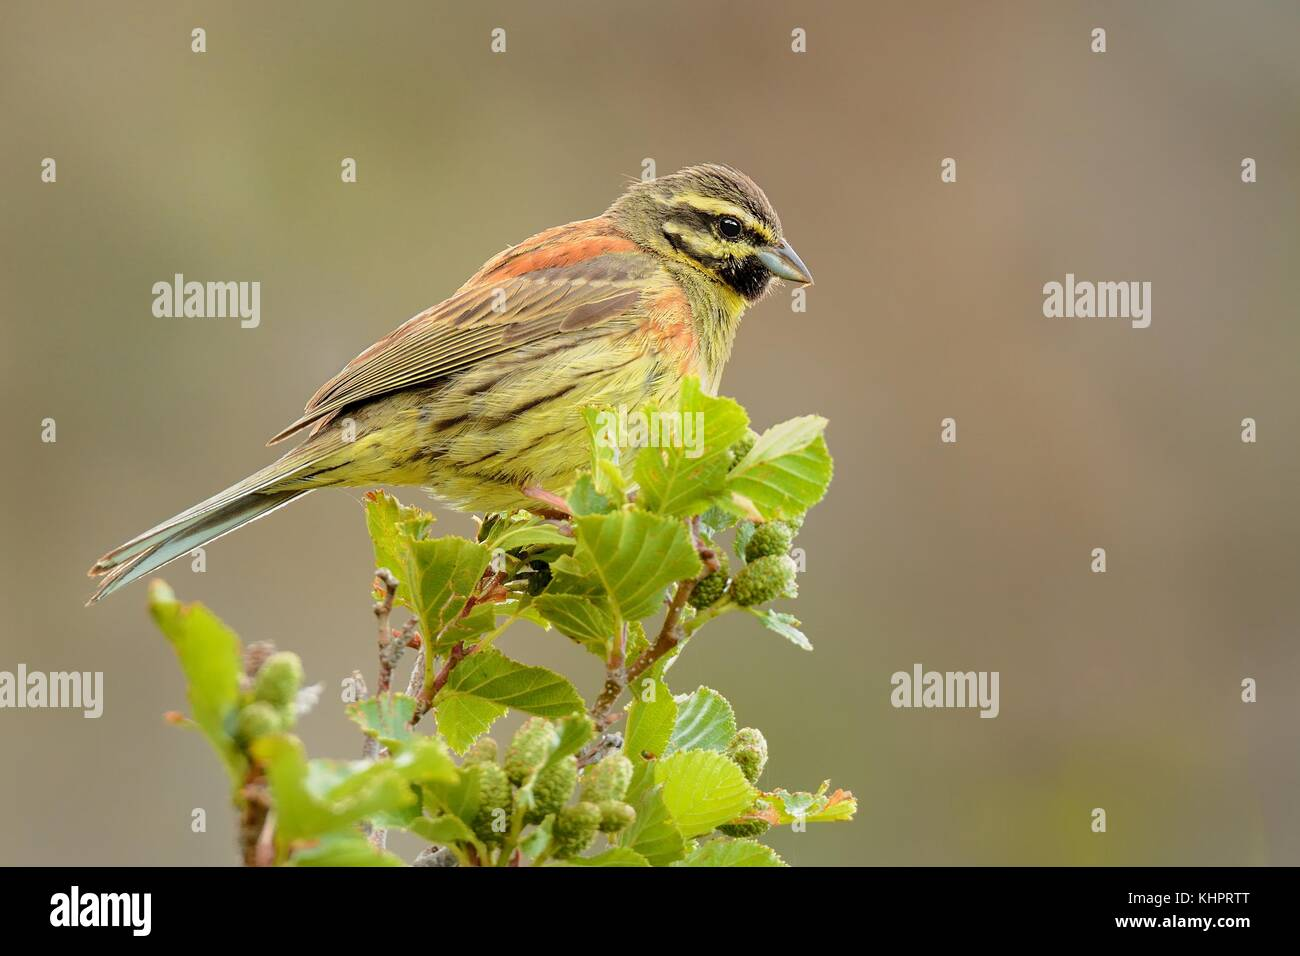 Cirl Bunting - Emberiza cirlus sitting on the branch - Stock Image